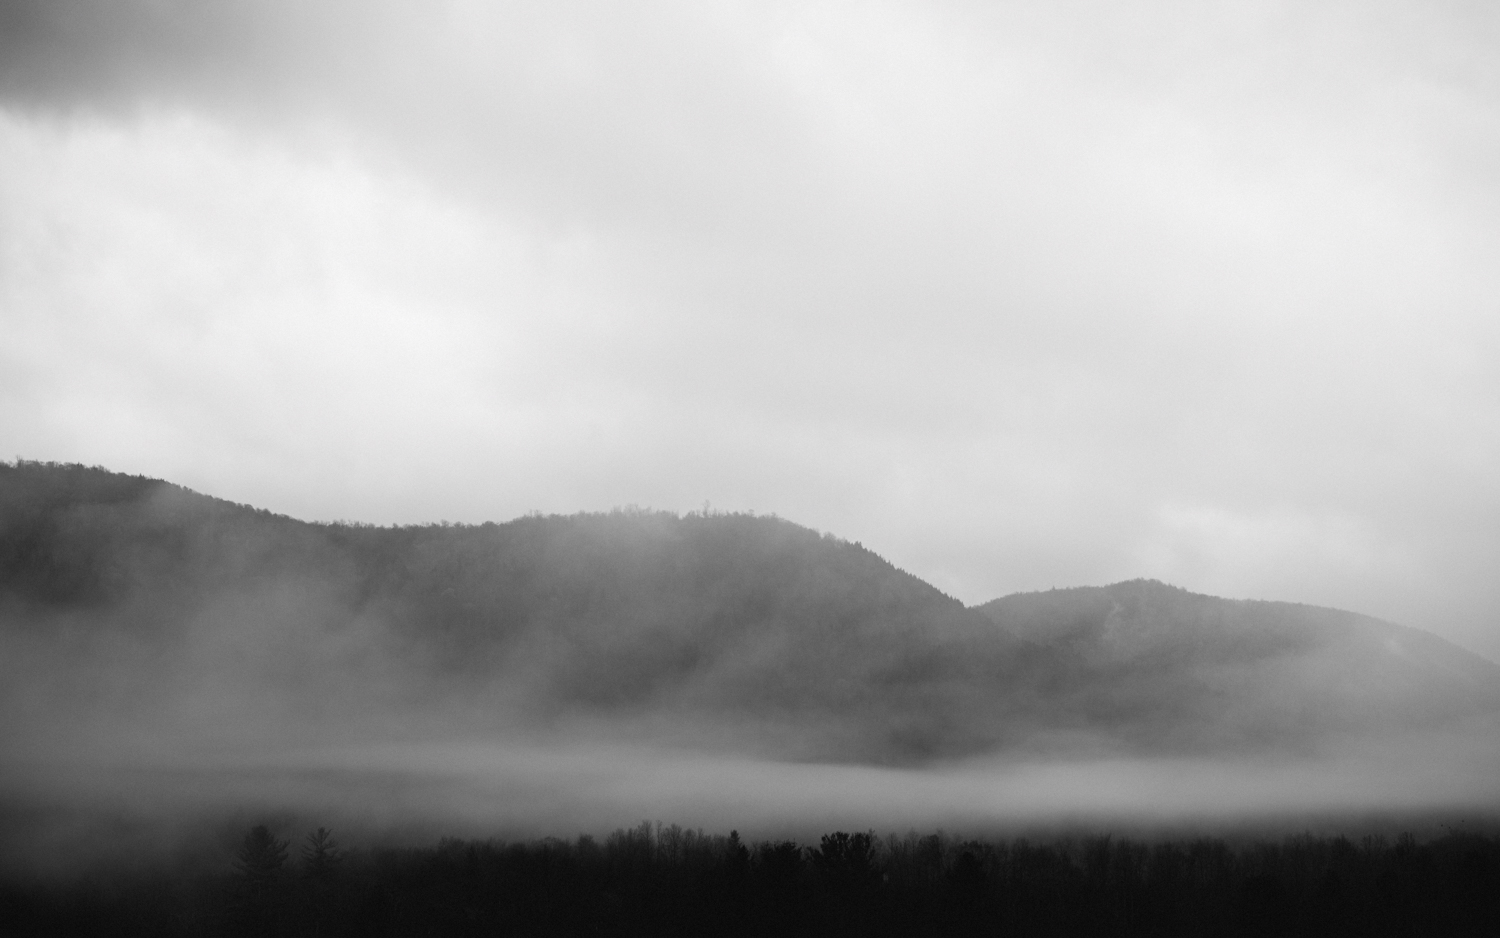 foggy mountains in vermont